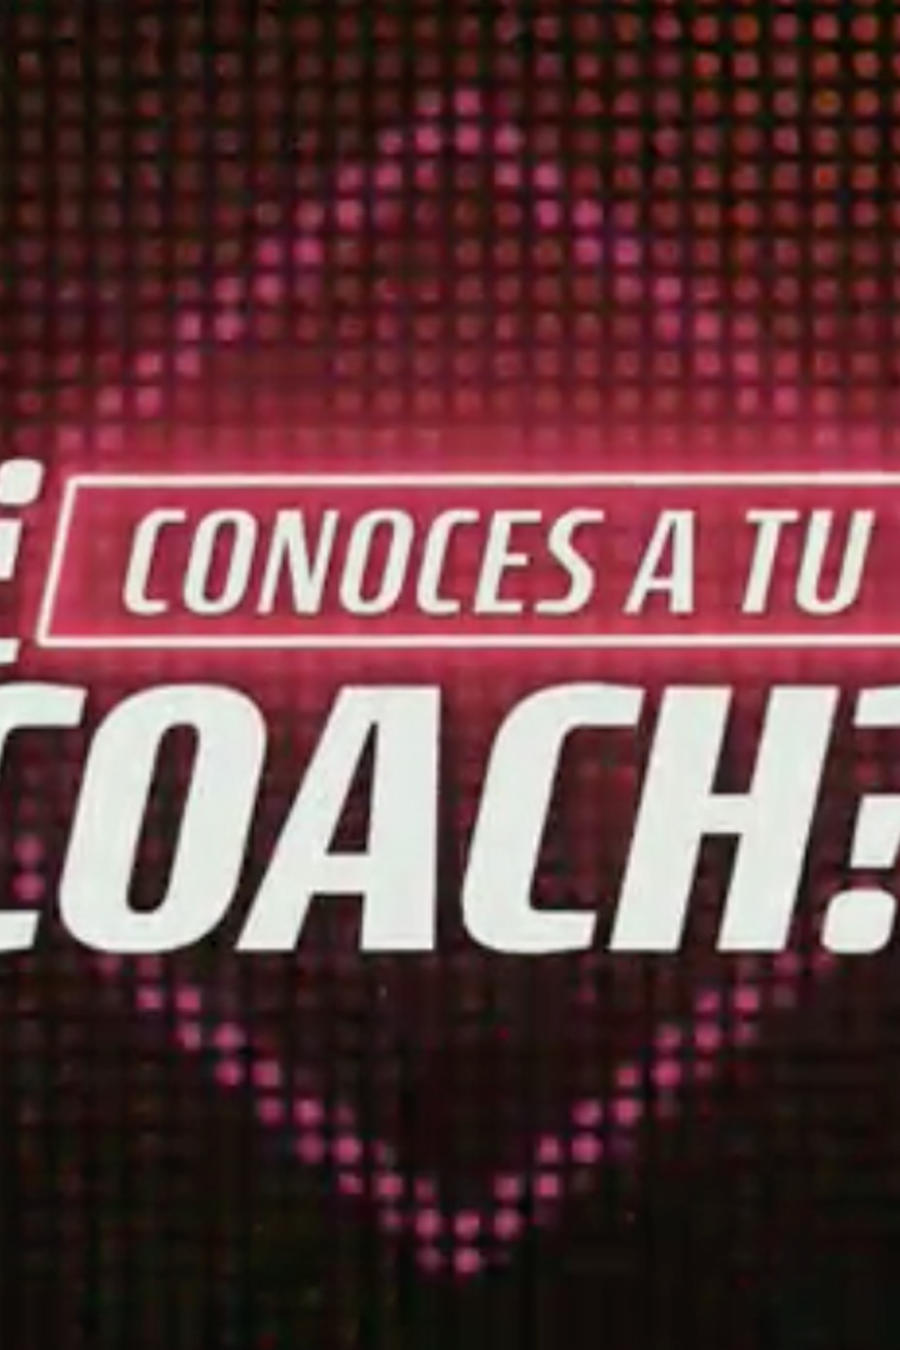 Conoces a tu coach